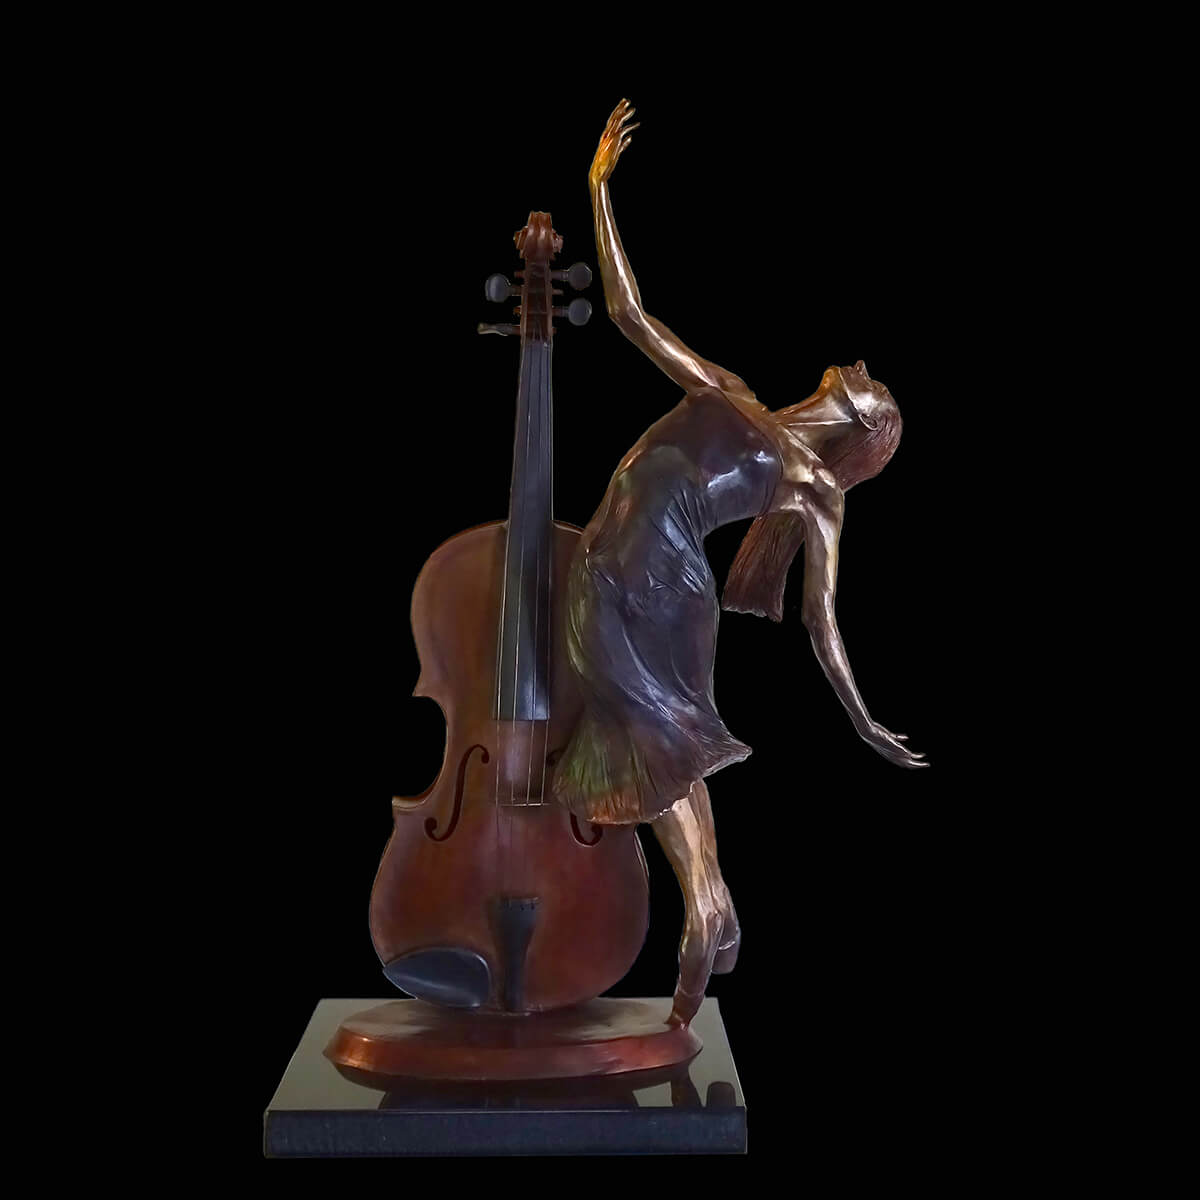 Adagio is a bronze sculpture of a ballerina with a violin by Andrew DeVries, copyright 2020